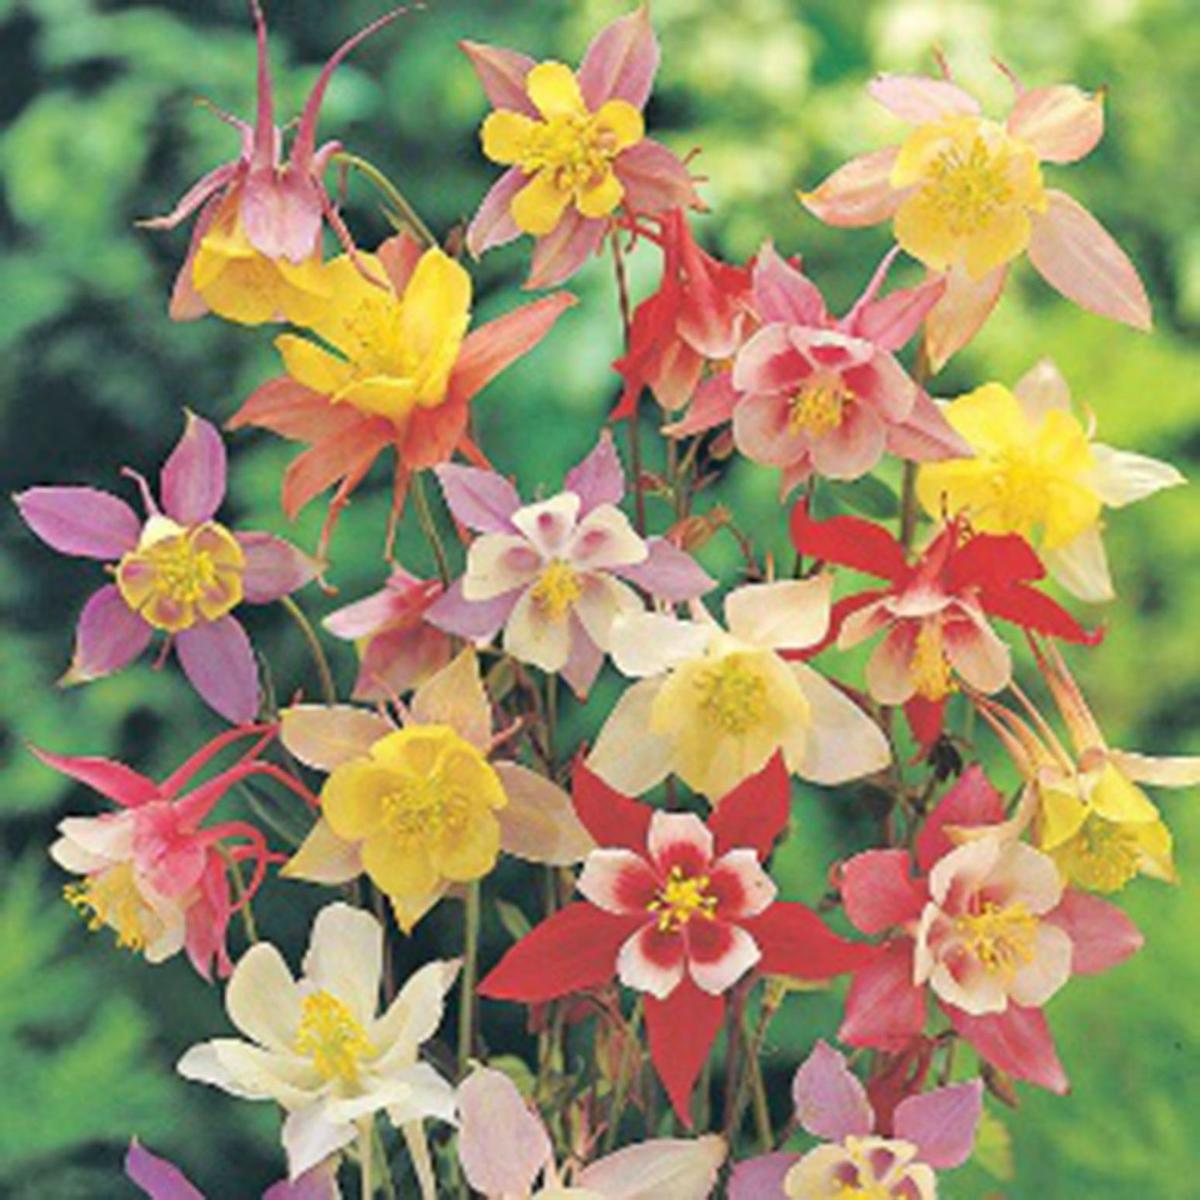 One gardener to another plant long blooming perennials for lasting columbine izmirmasajfo